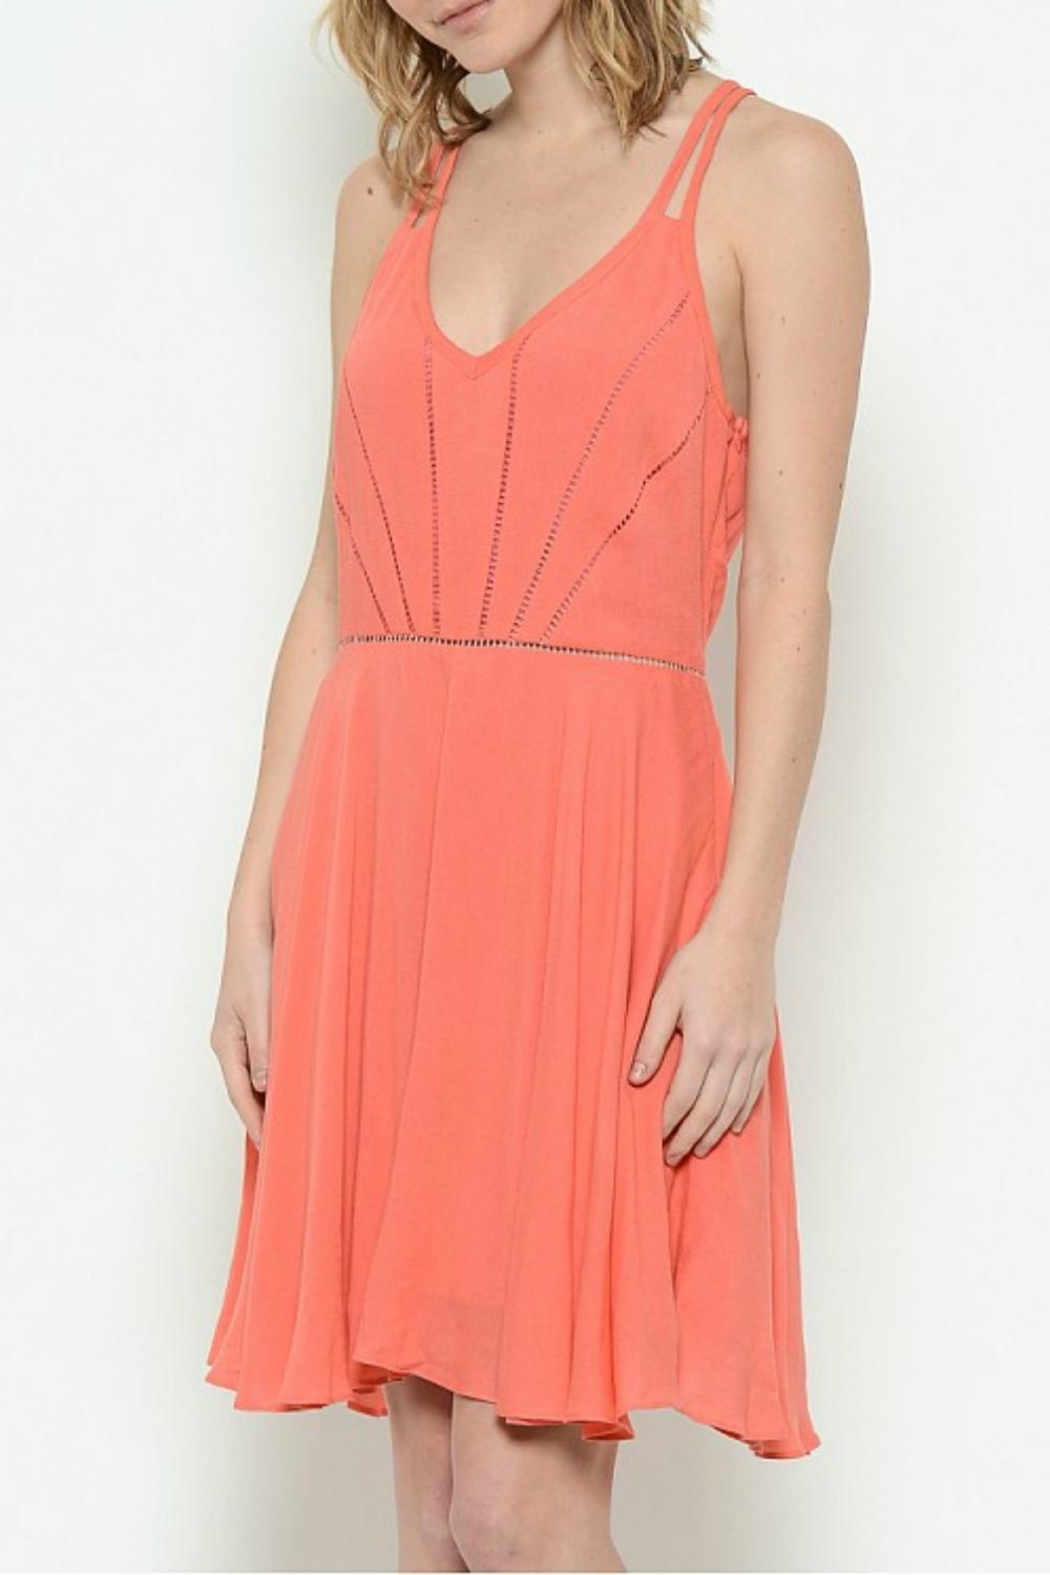 Esley Collection Coral Racerback Dress - Main Image